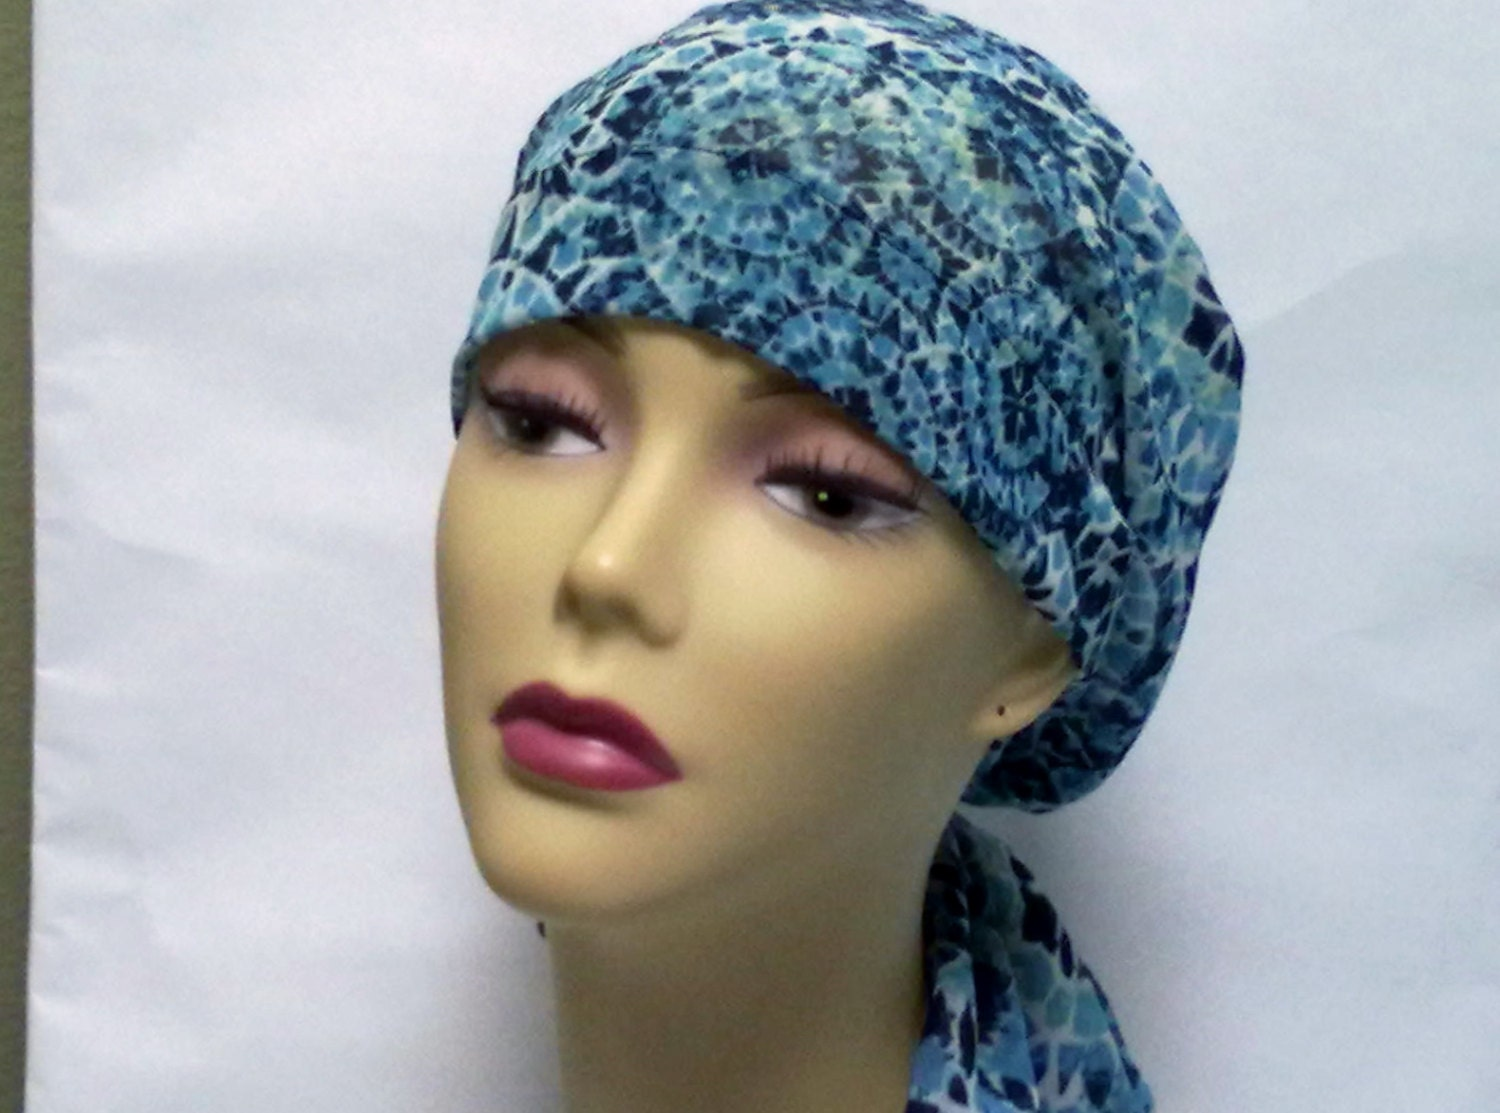 womens hats caps chemo patient headcoverings soft and